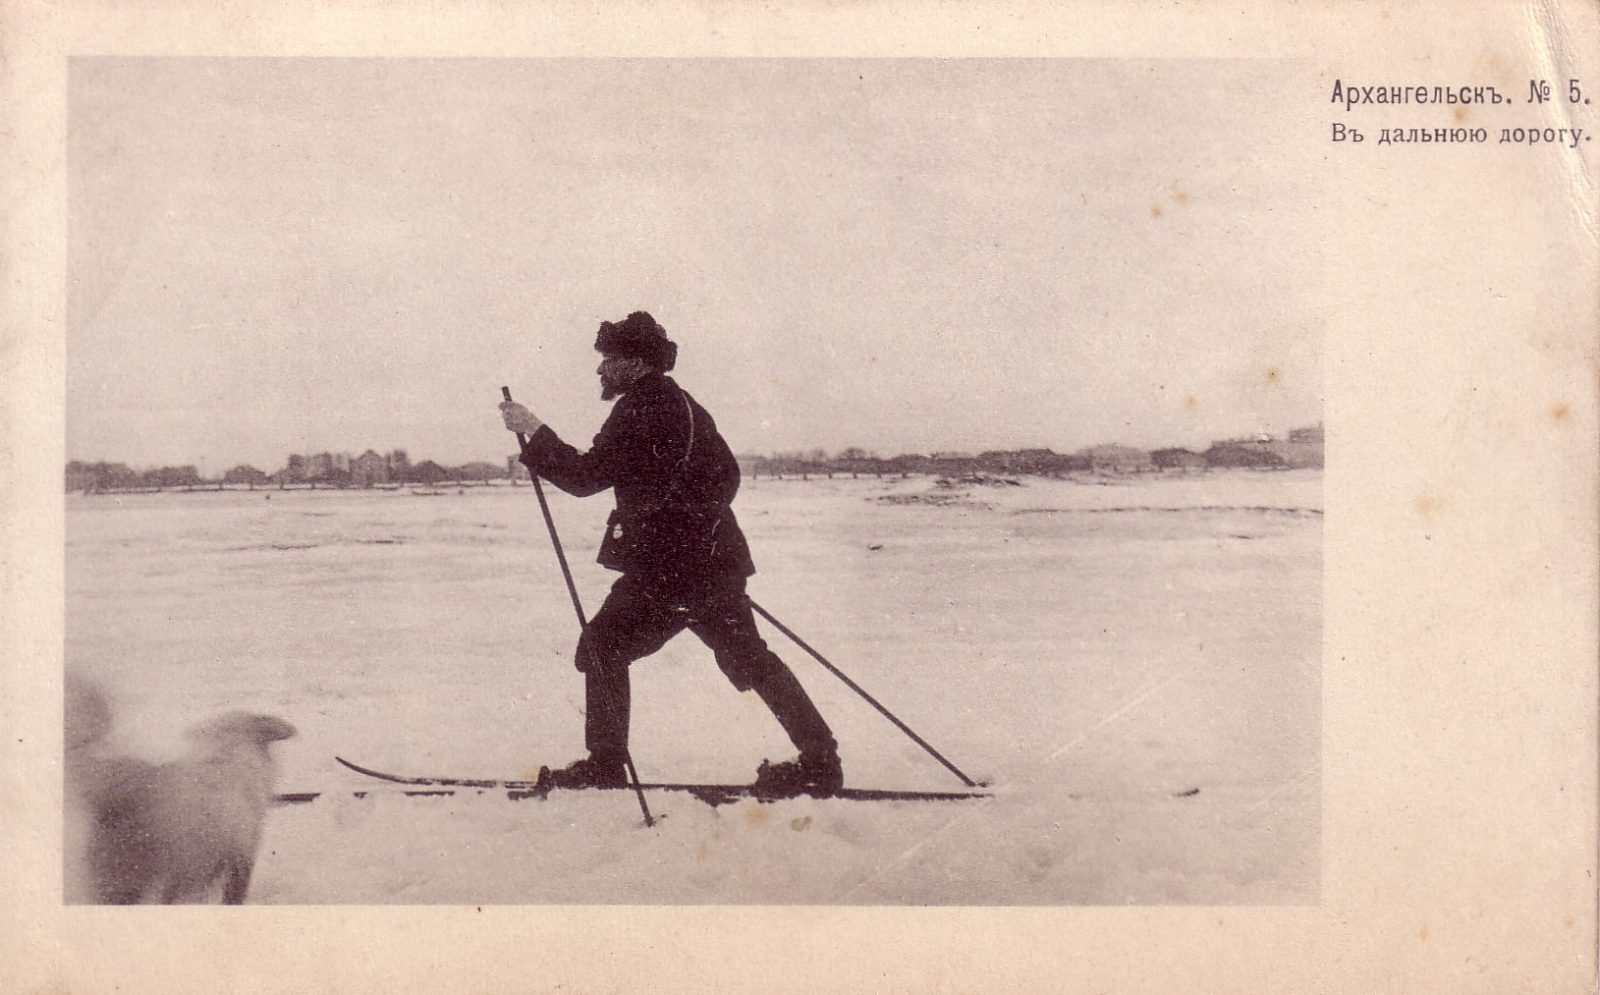 Skiing in Arkhangelsk (Archangel)